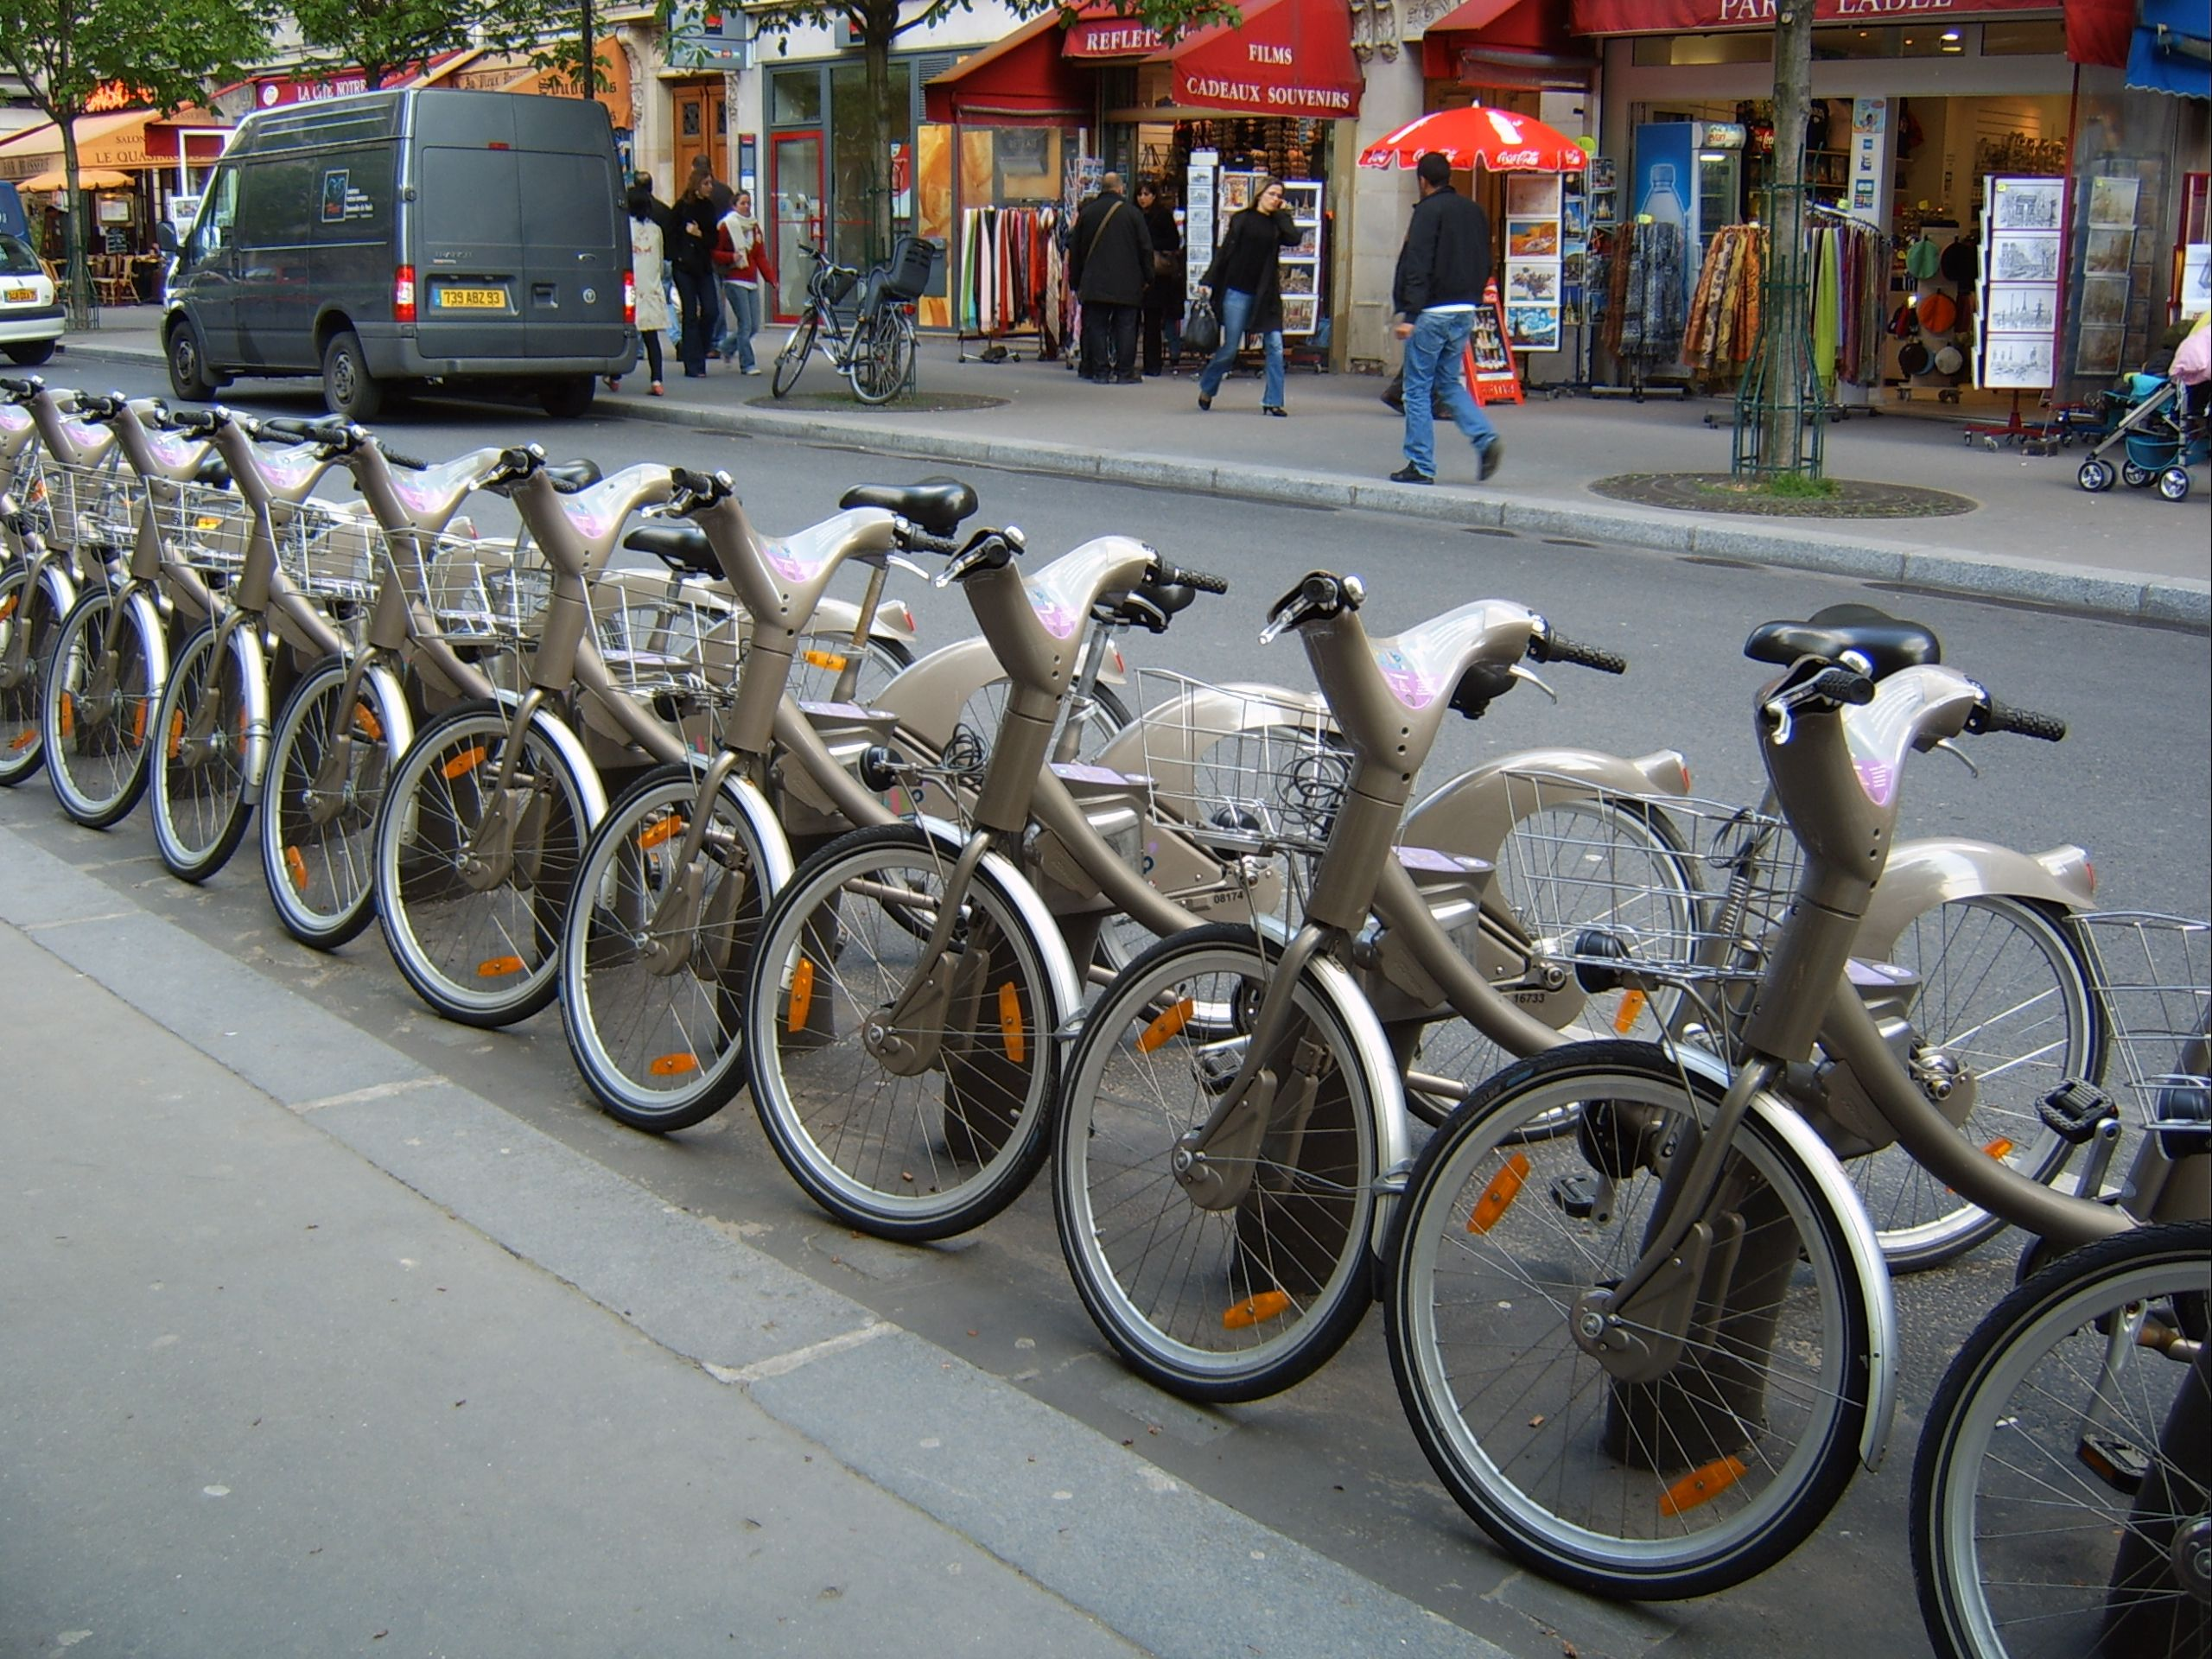 Velib Bike Rental Cheap Transport In The City And Free For The